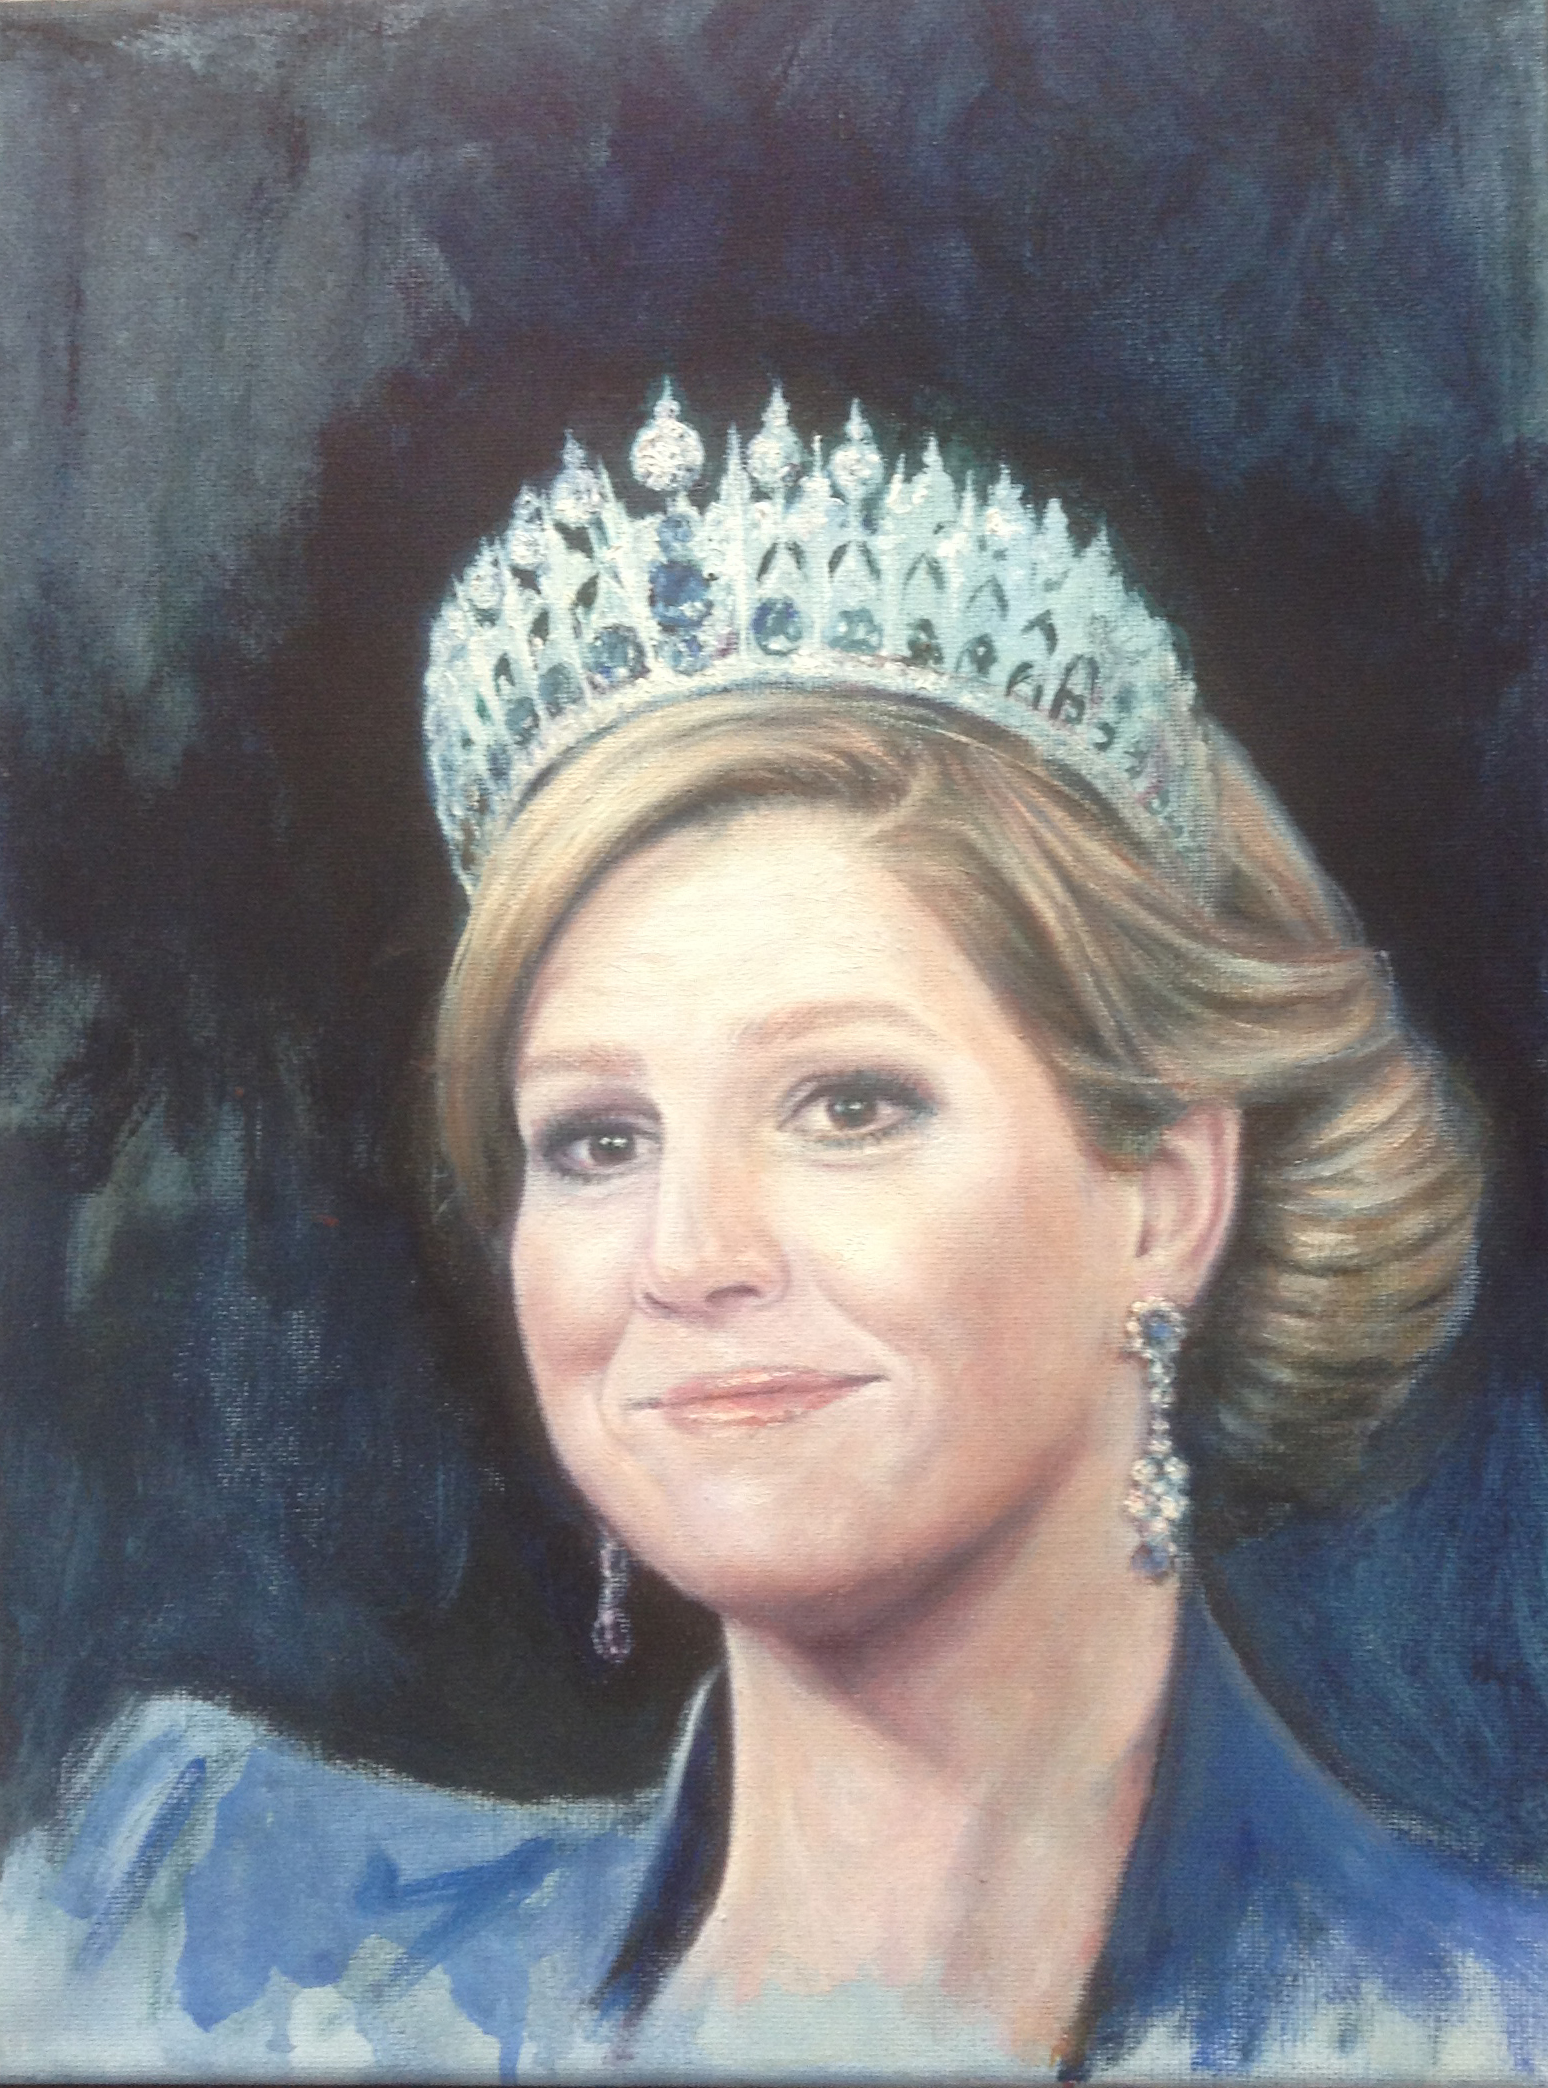 Maxima as a new queen…